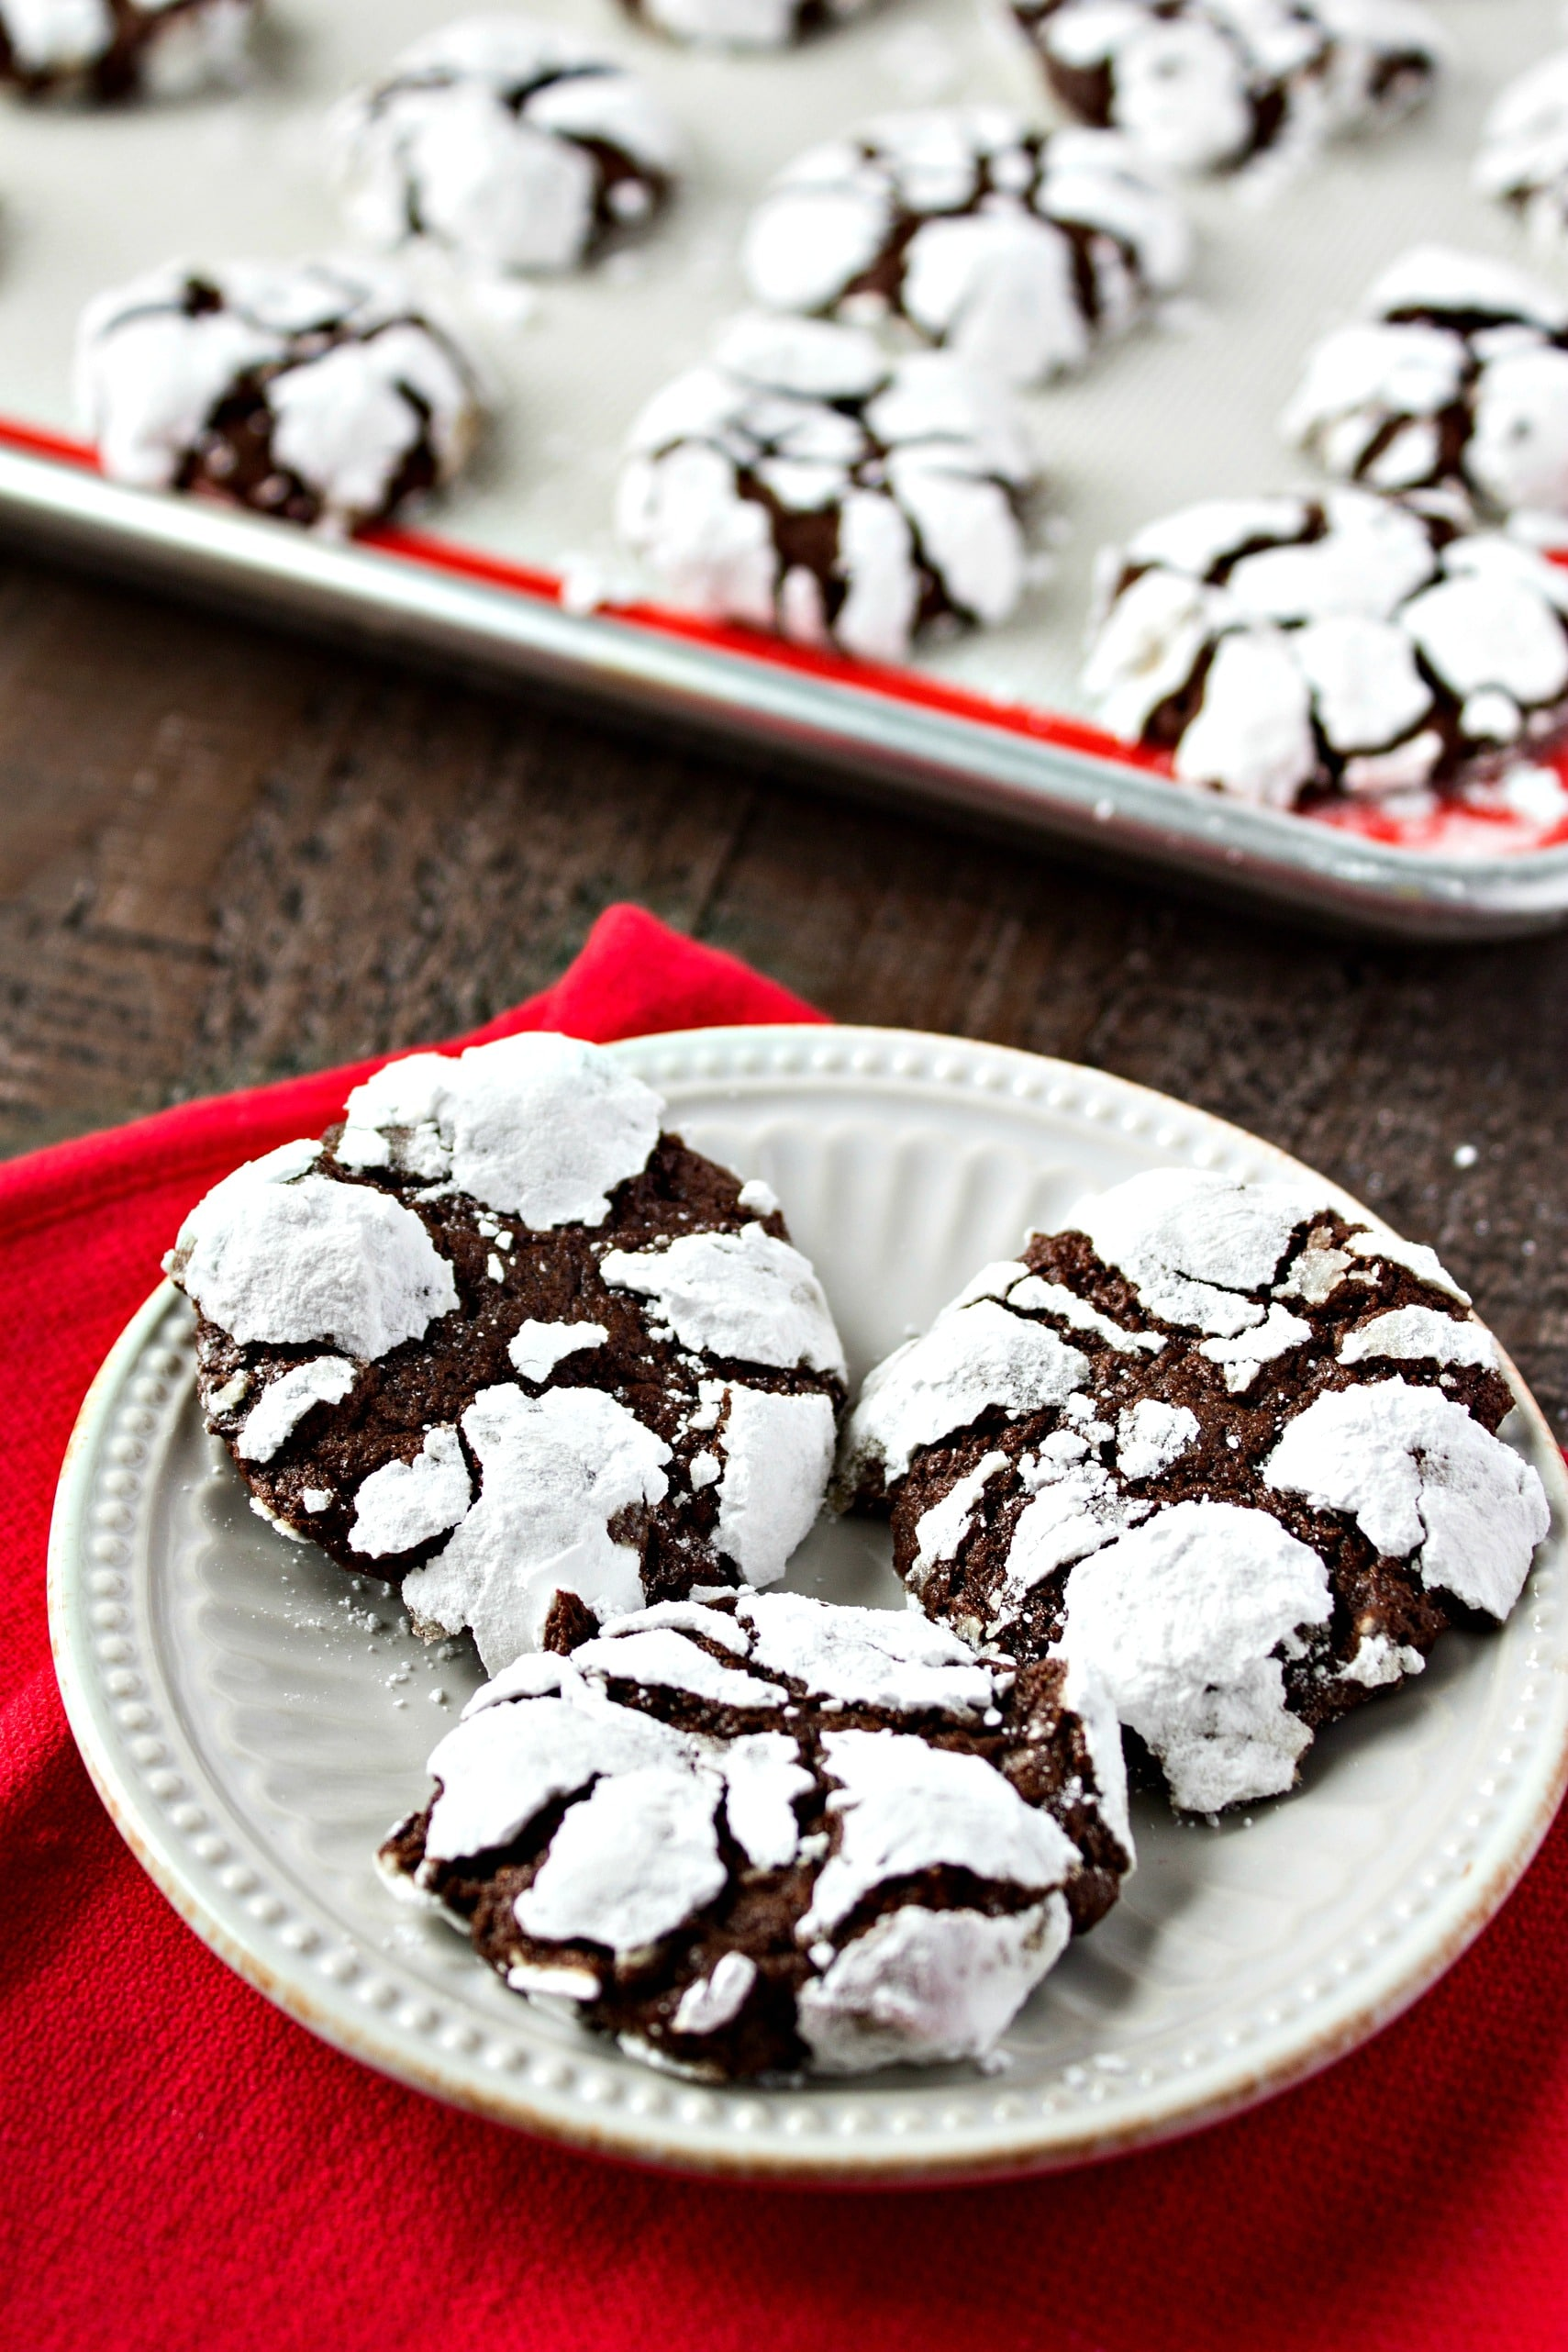 Chocolate Espresso Snowcaps - A chewy, chocolate cookie with a hint of espresso and then rolled in powdered sugar. They'll remind you of little bites of brownie but with a little wintery snow on top.